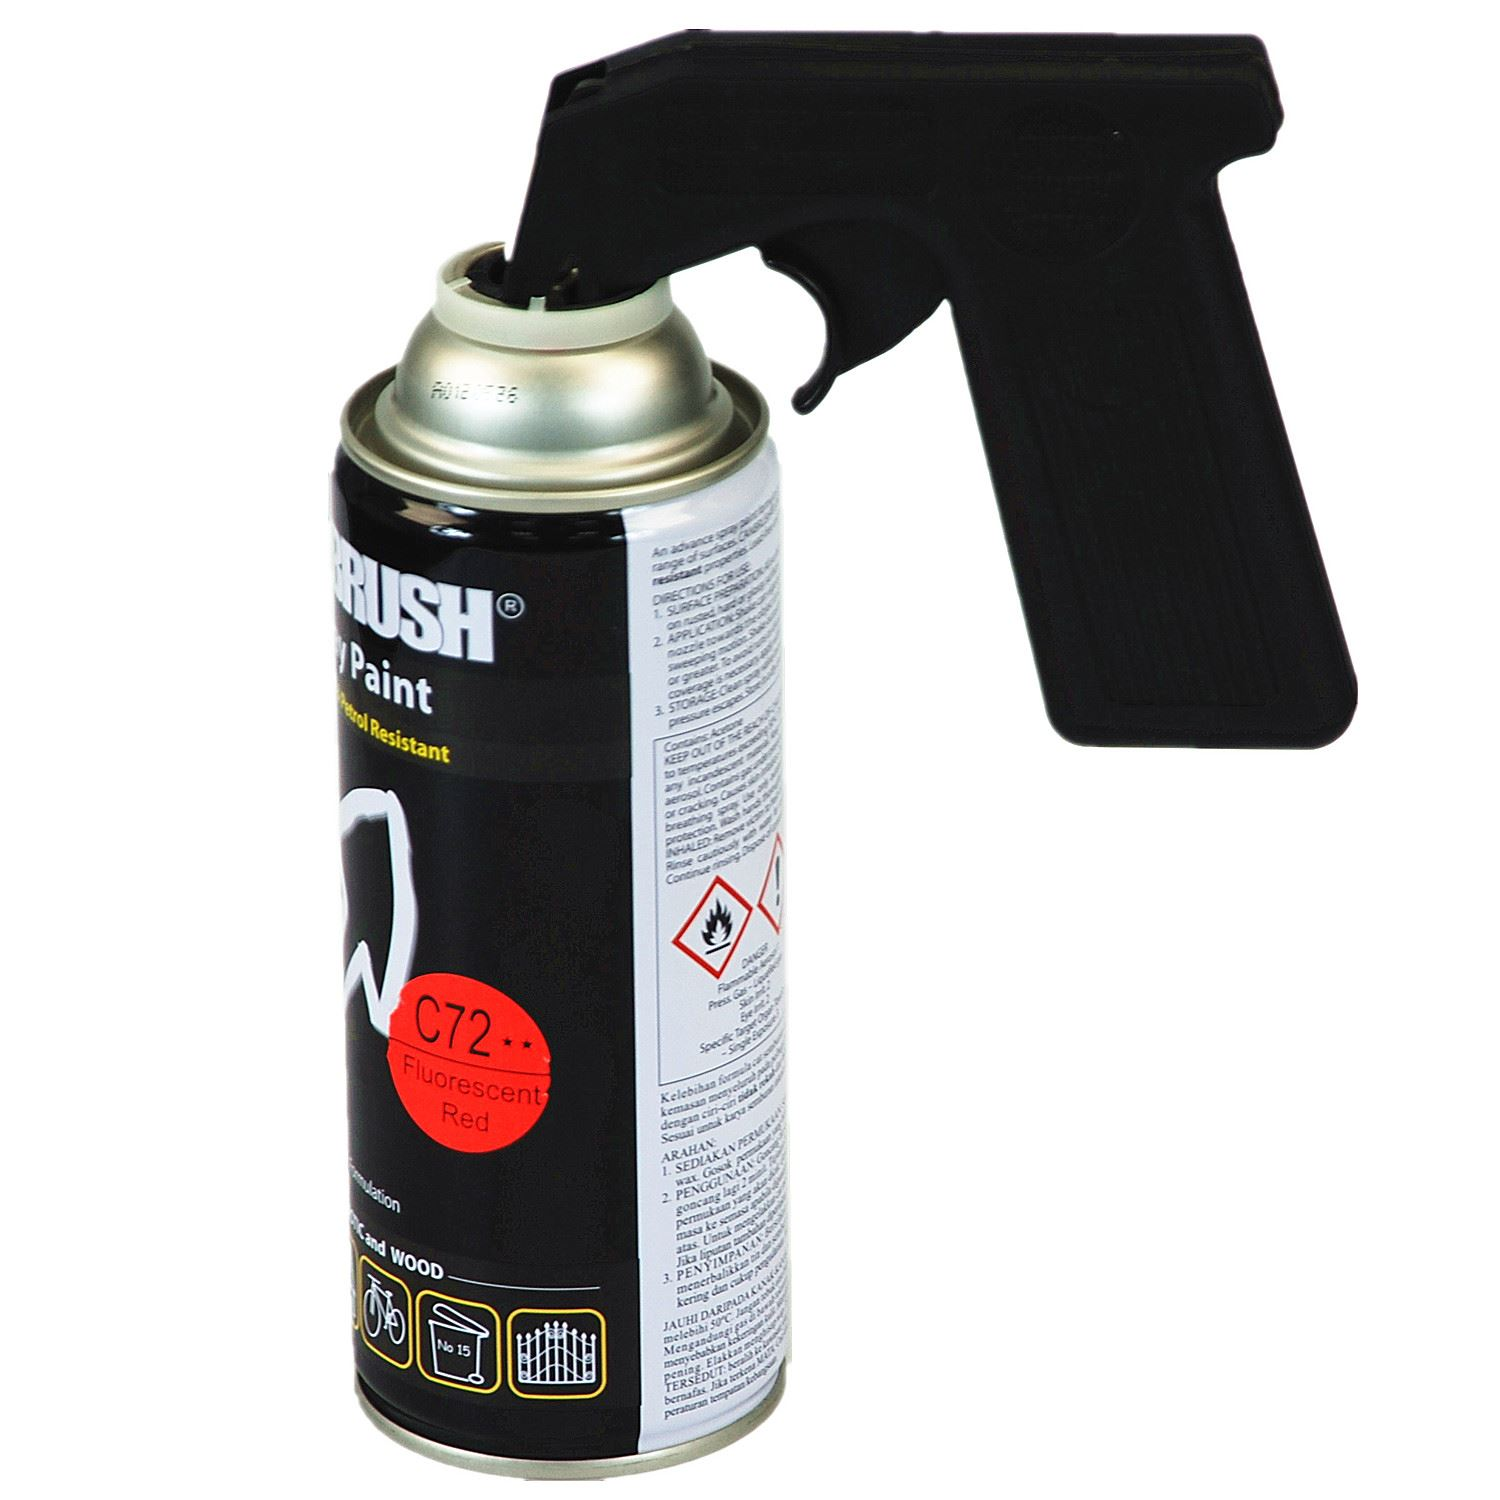 Aerosol Spray Handle Paint Applicator Tin Can Trigger Gun Lock System Ebay